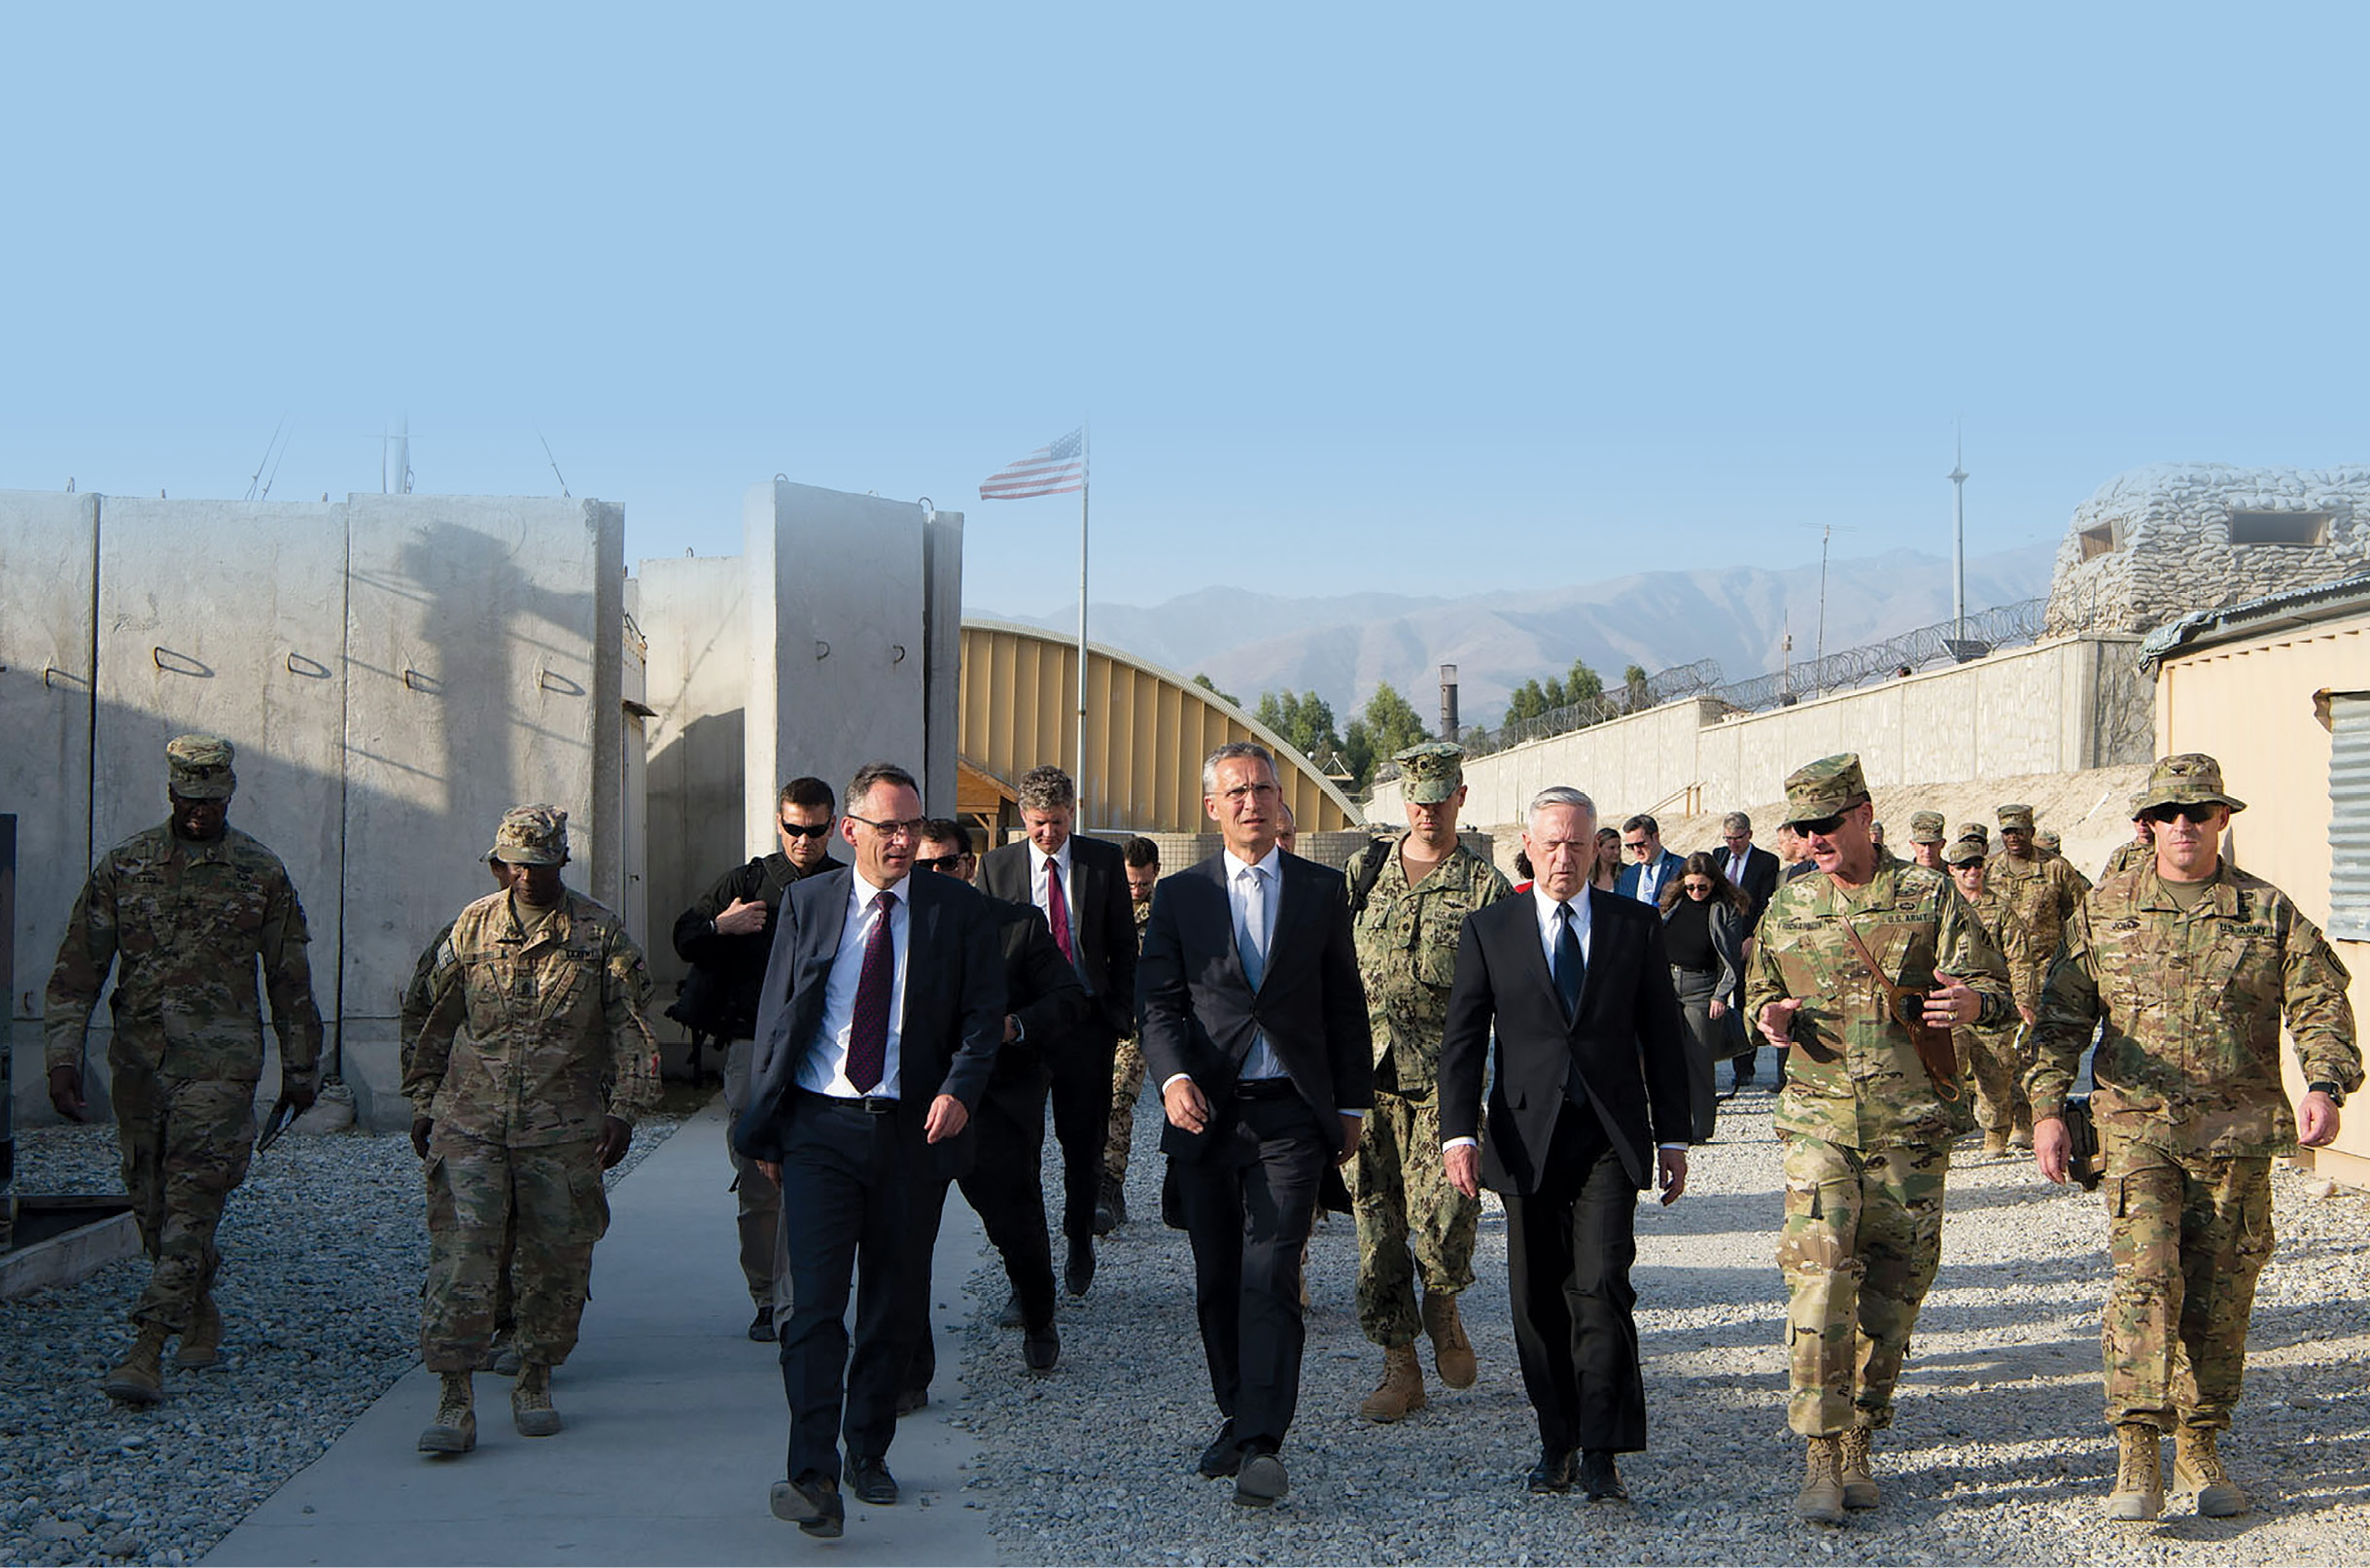 U.S. Secretary of Defense Jim Mattis (third from right) and NATO Secretary General Jens Stoltenberg (fourth from right) walk to a meeting 27 September 2017 with deployed forces in Afghanistan. (Photo by Staff Sgt. Jette Carr, U.S. Air Force)